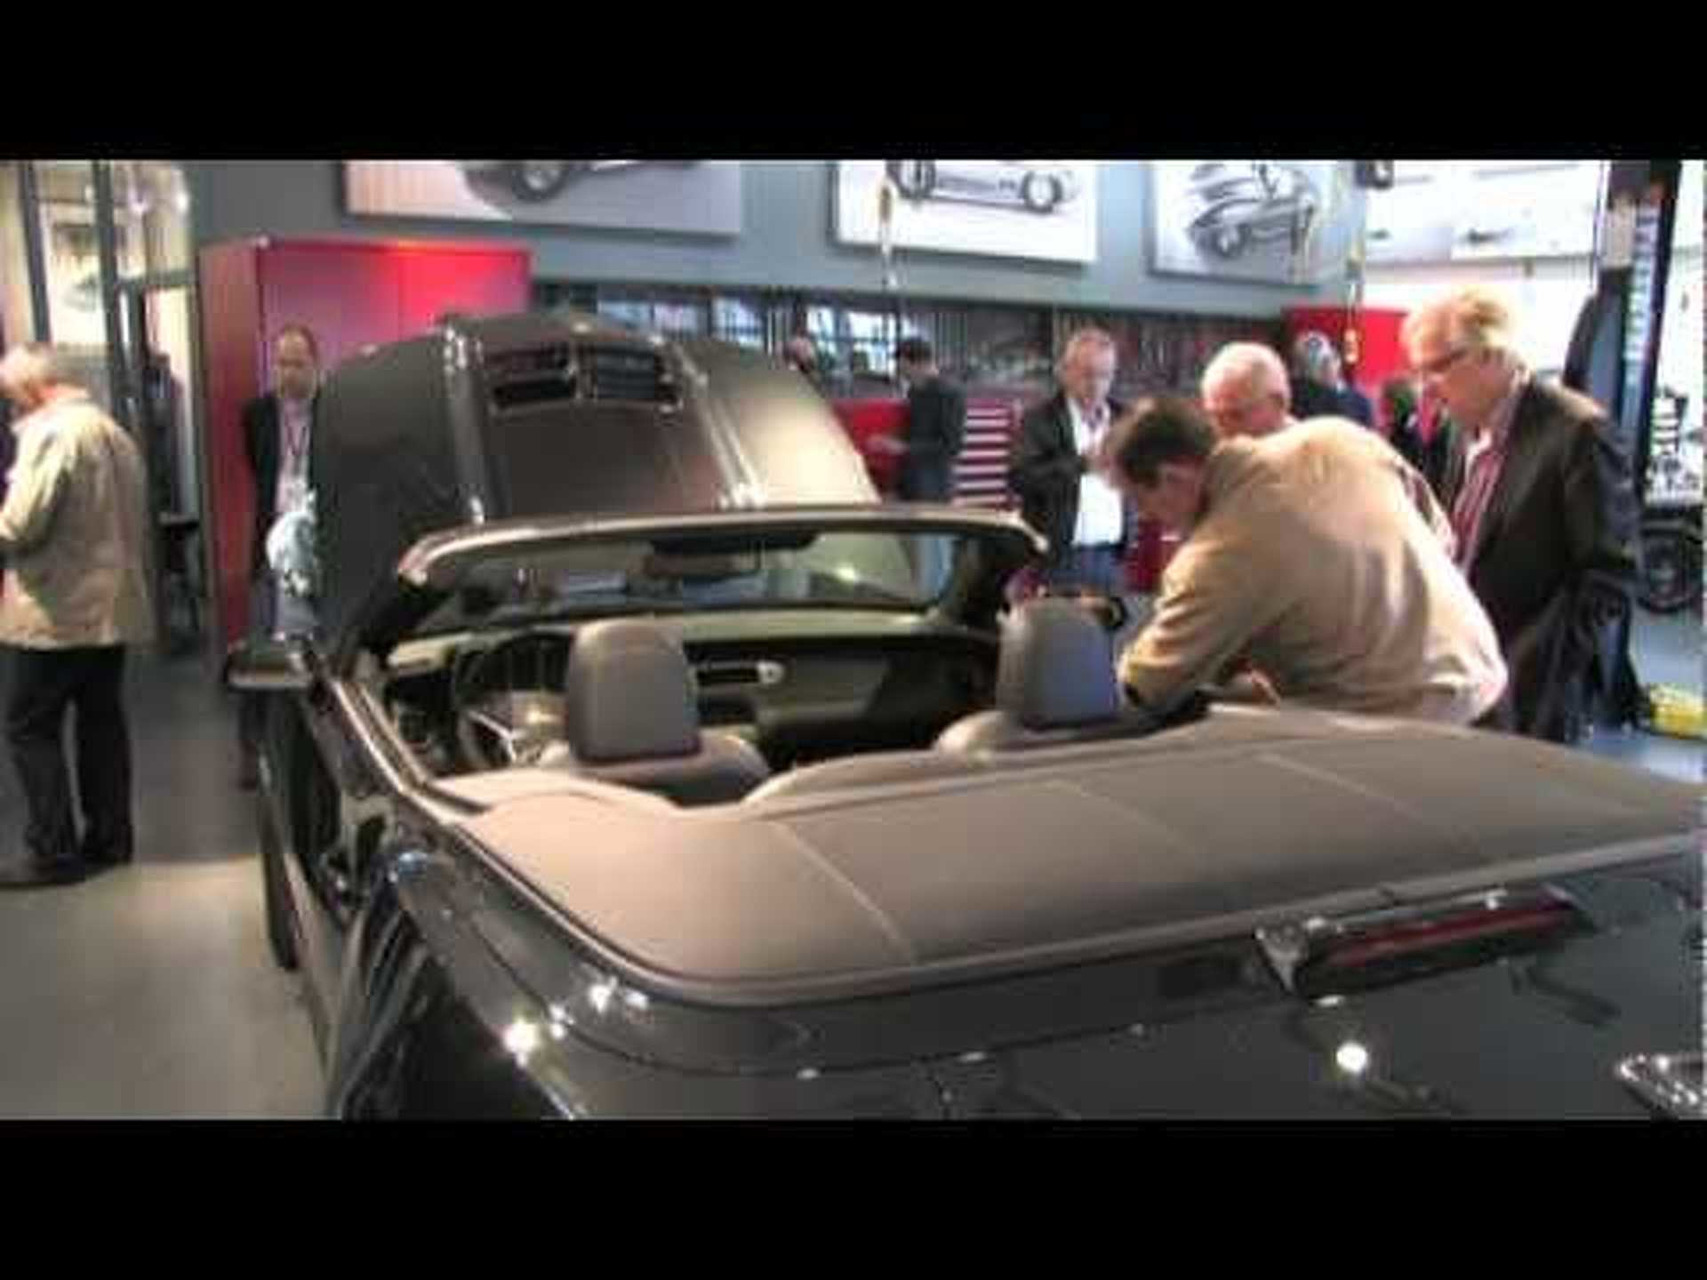 2013 Chevrolet Camaro ZL1 Convertible - The Most Powerful Chevrolet Convertible Ever